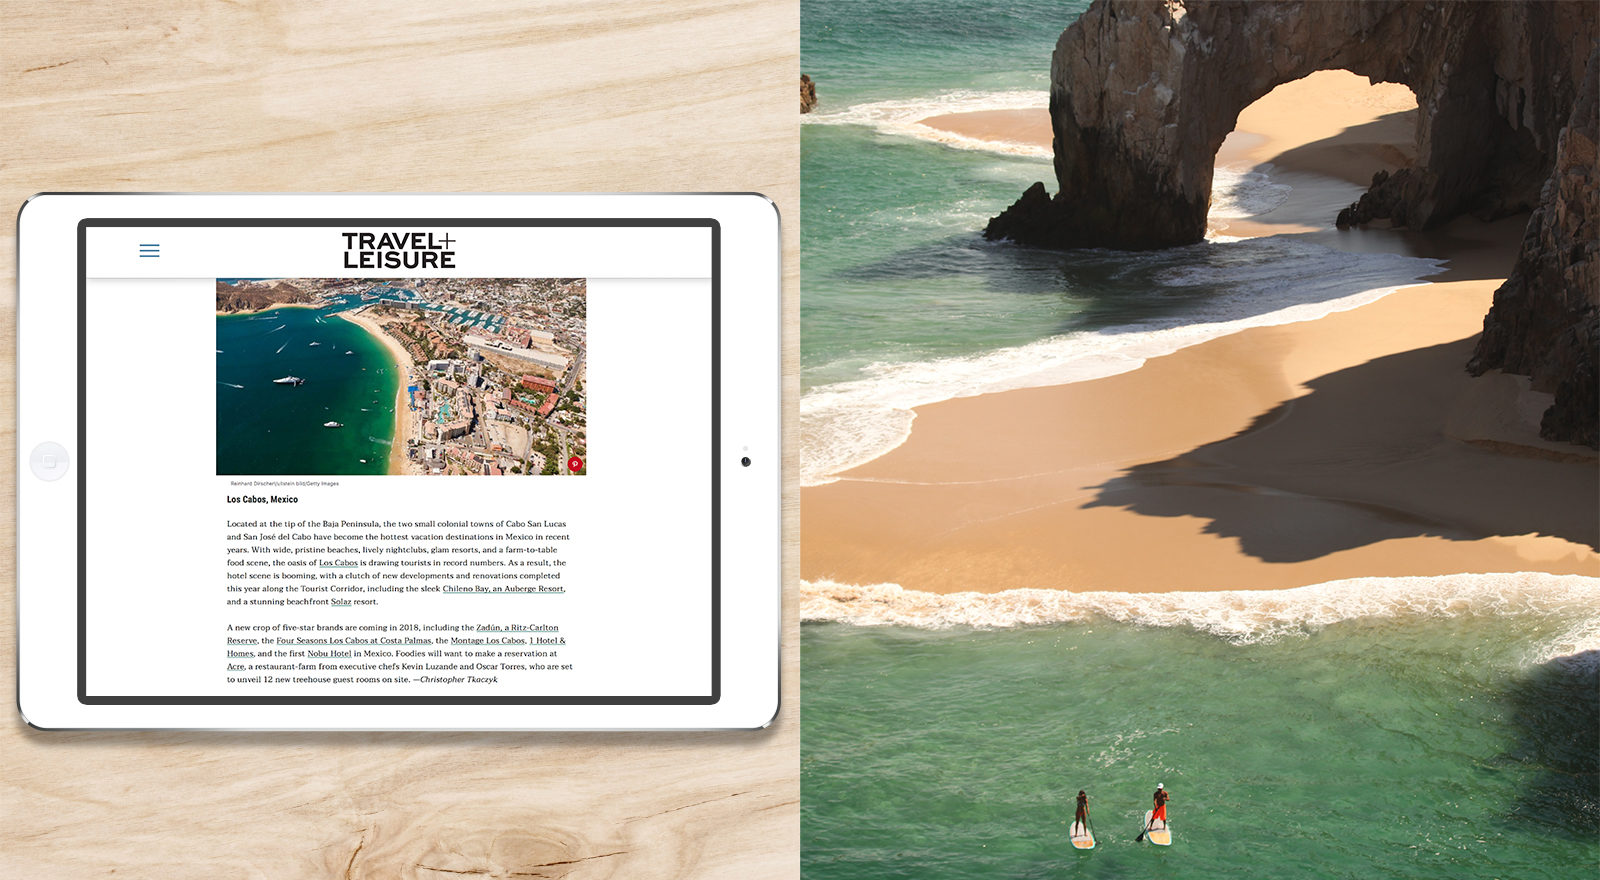 article mock up in ipad and beach photo